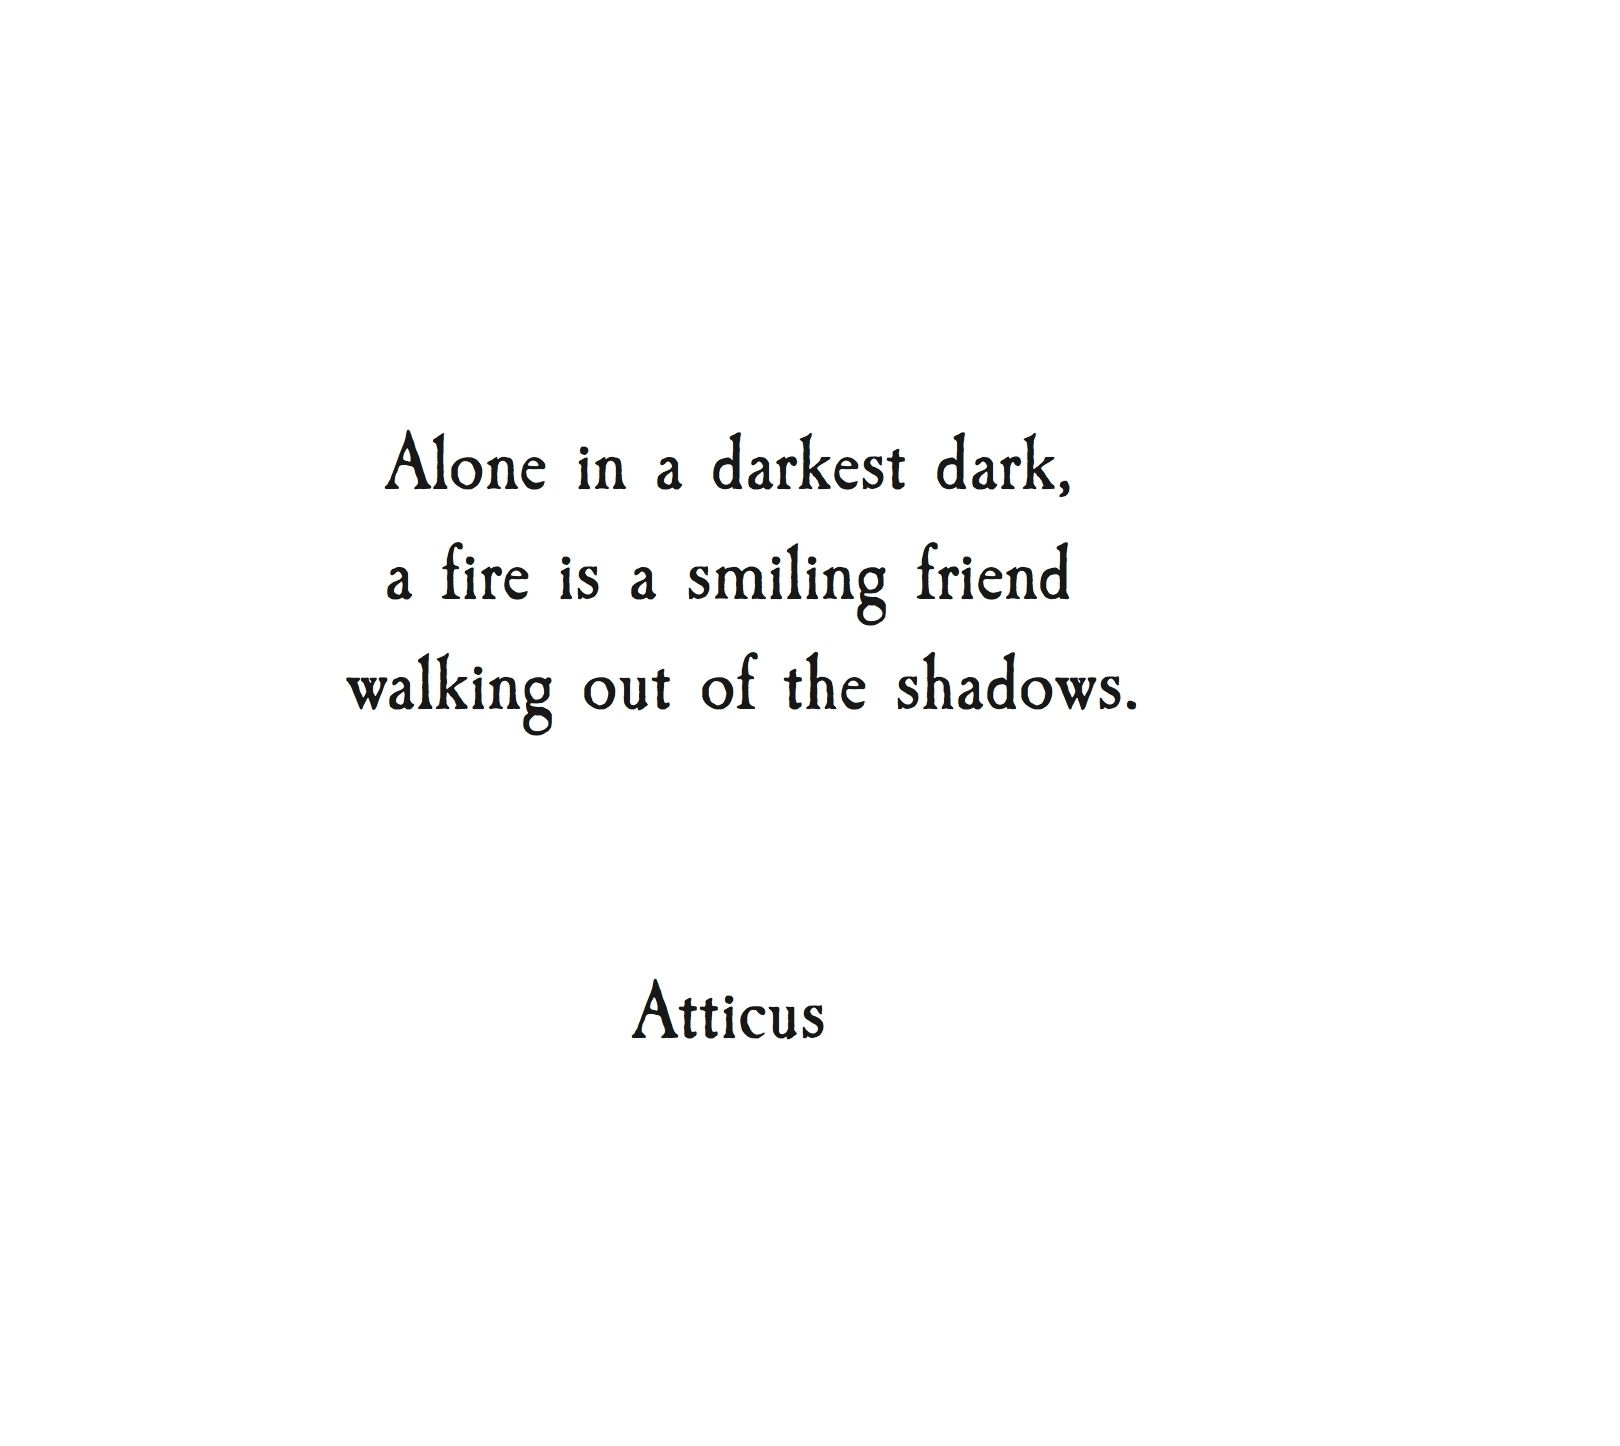 Smile poems and quotes - Alone In A Darkest Dark A Fire Is A Smiling Friend Smile Wordatticus Quotesinspirational Poemspoem